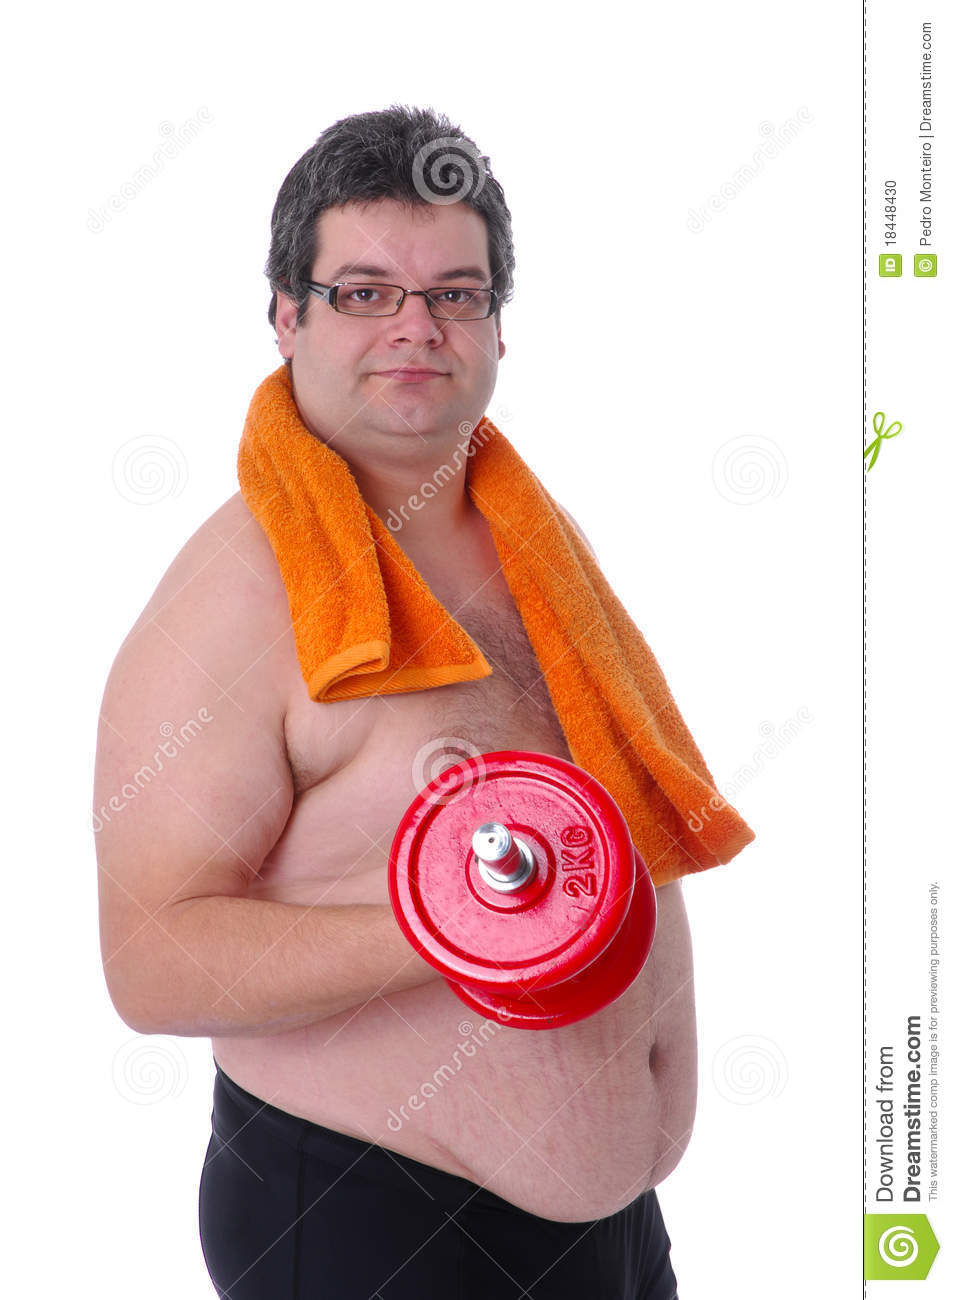 Fat Man Doing Workout With Dumbbells Stock Photo - Image ...